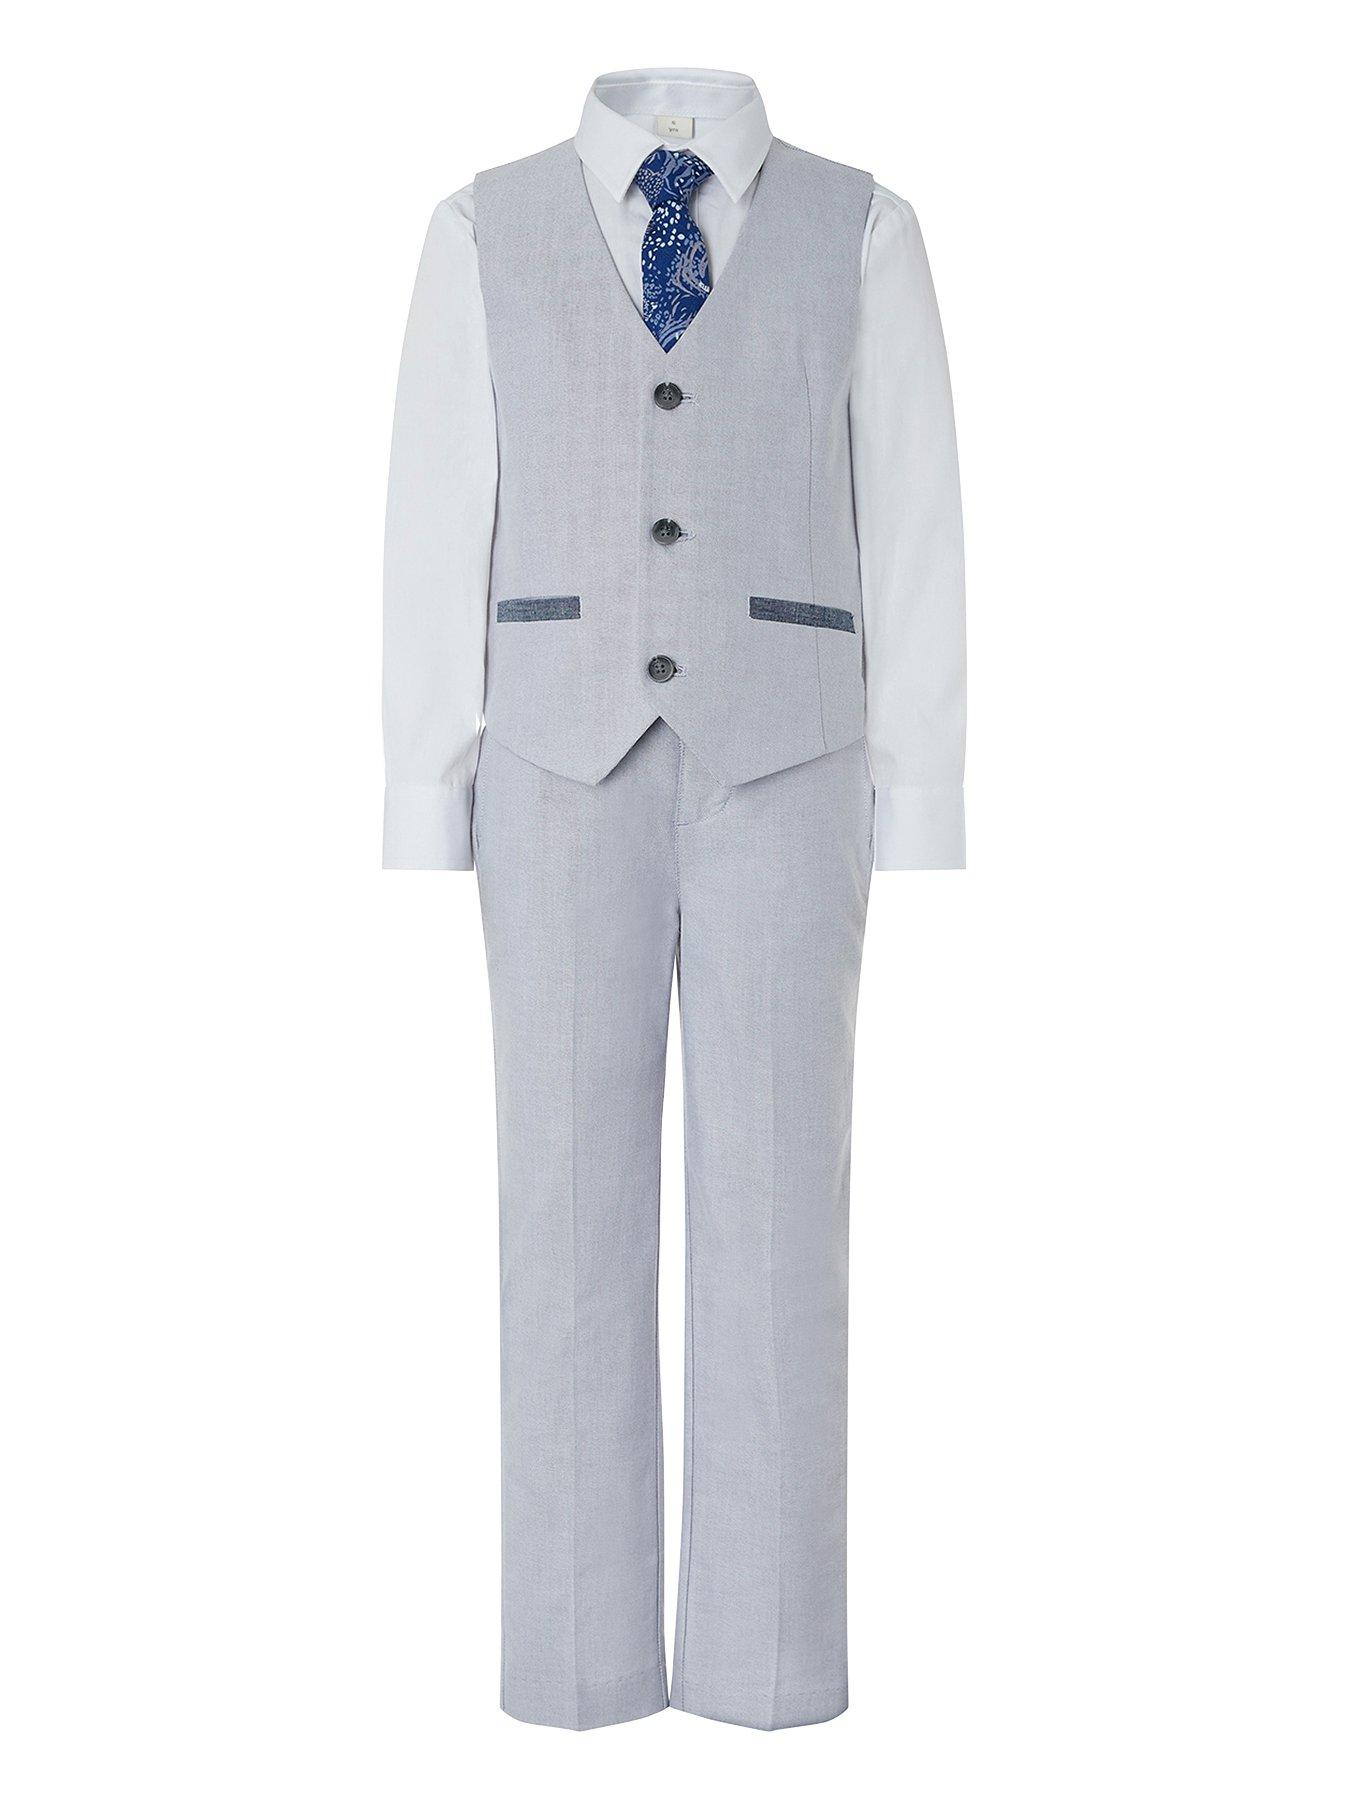 15 years Boys Formal Grey Wedding Suit Included White Shirt /& Grey Tie Age 6 month